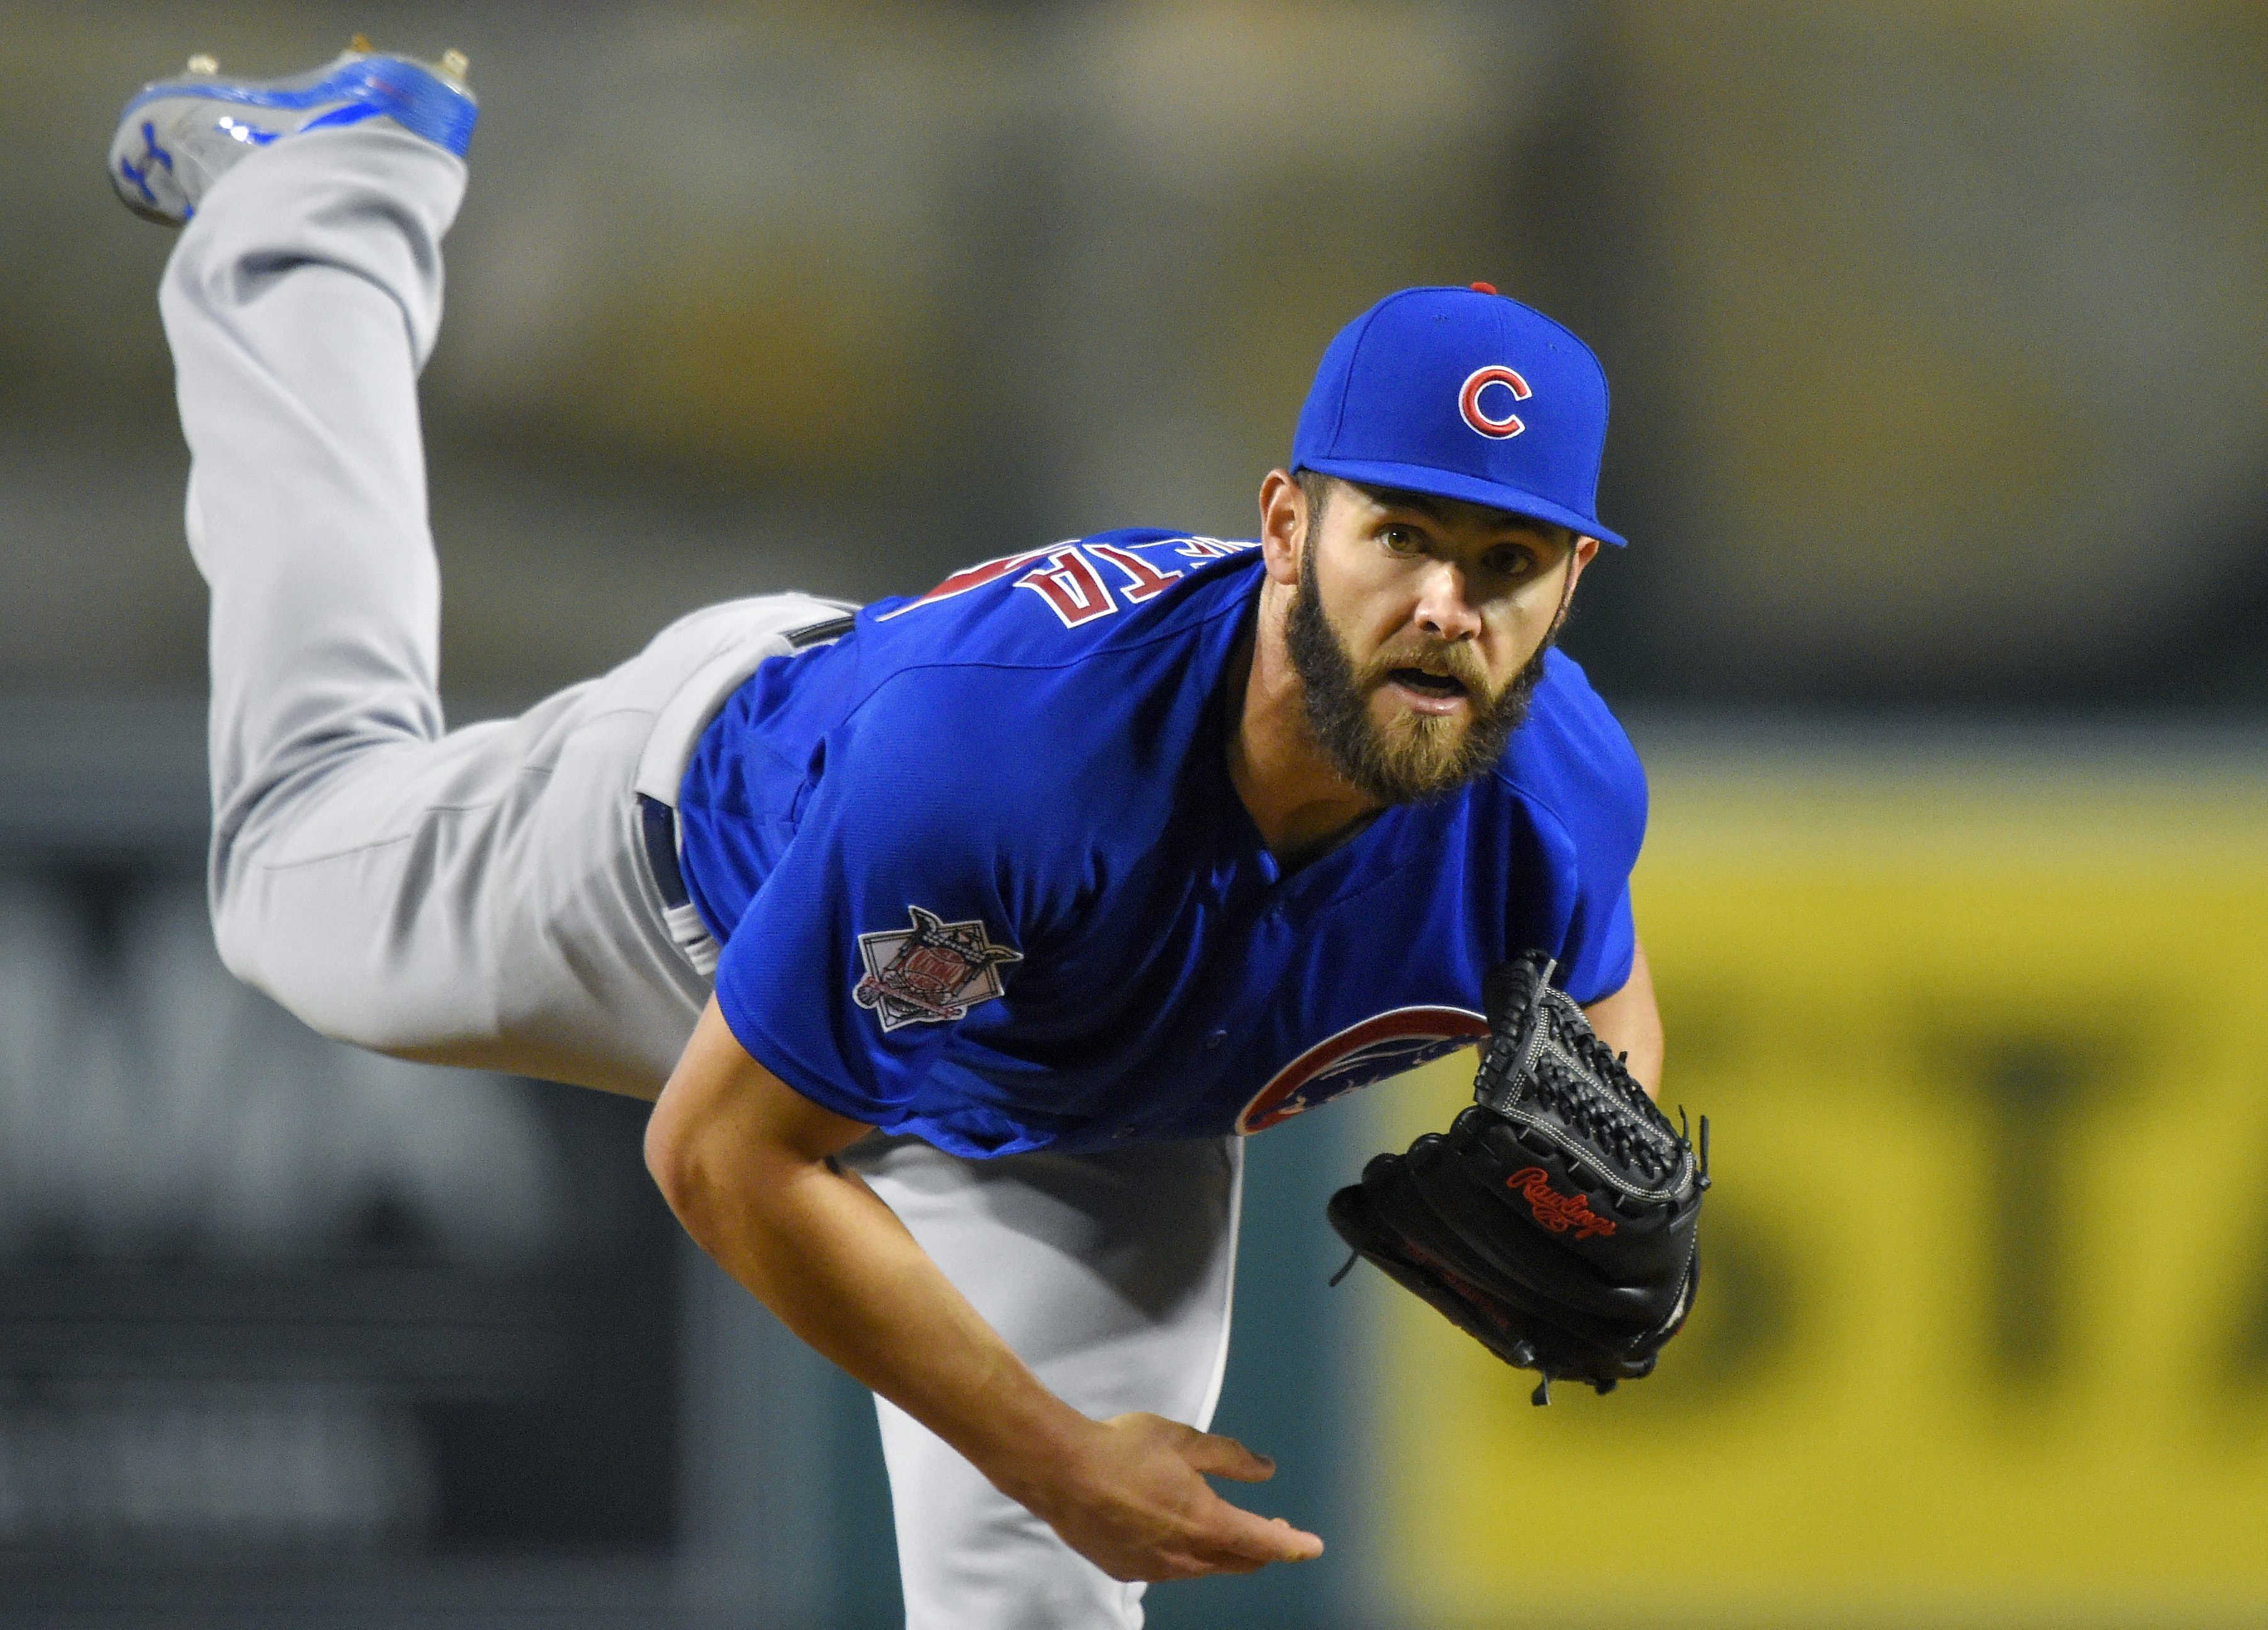 Chicago Cubs starting pitcher Jake Arrieta throws to the plate during the second inning of an opening day baseball game against the Los Angeles Angels, Monday, April 4, 2016, in Anaheim, Calif. (AP Photo/Mark J. Terrill)